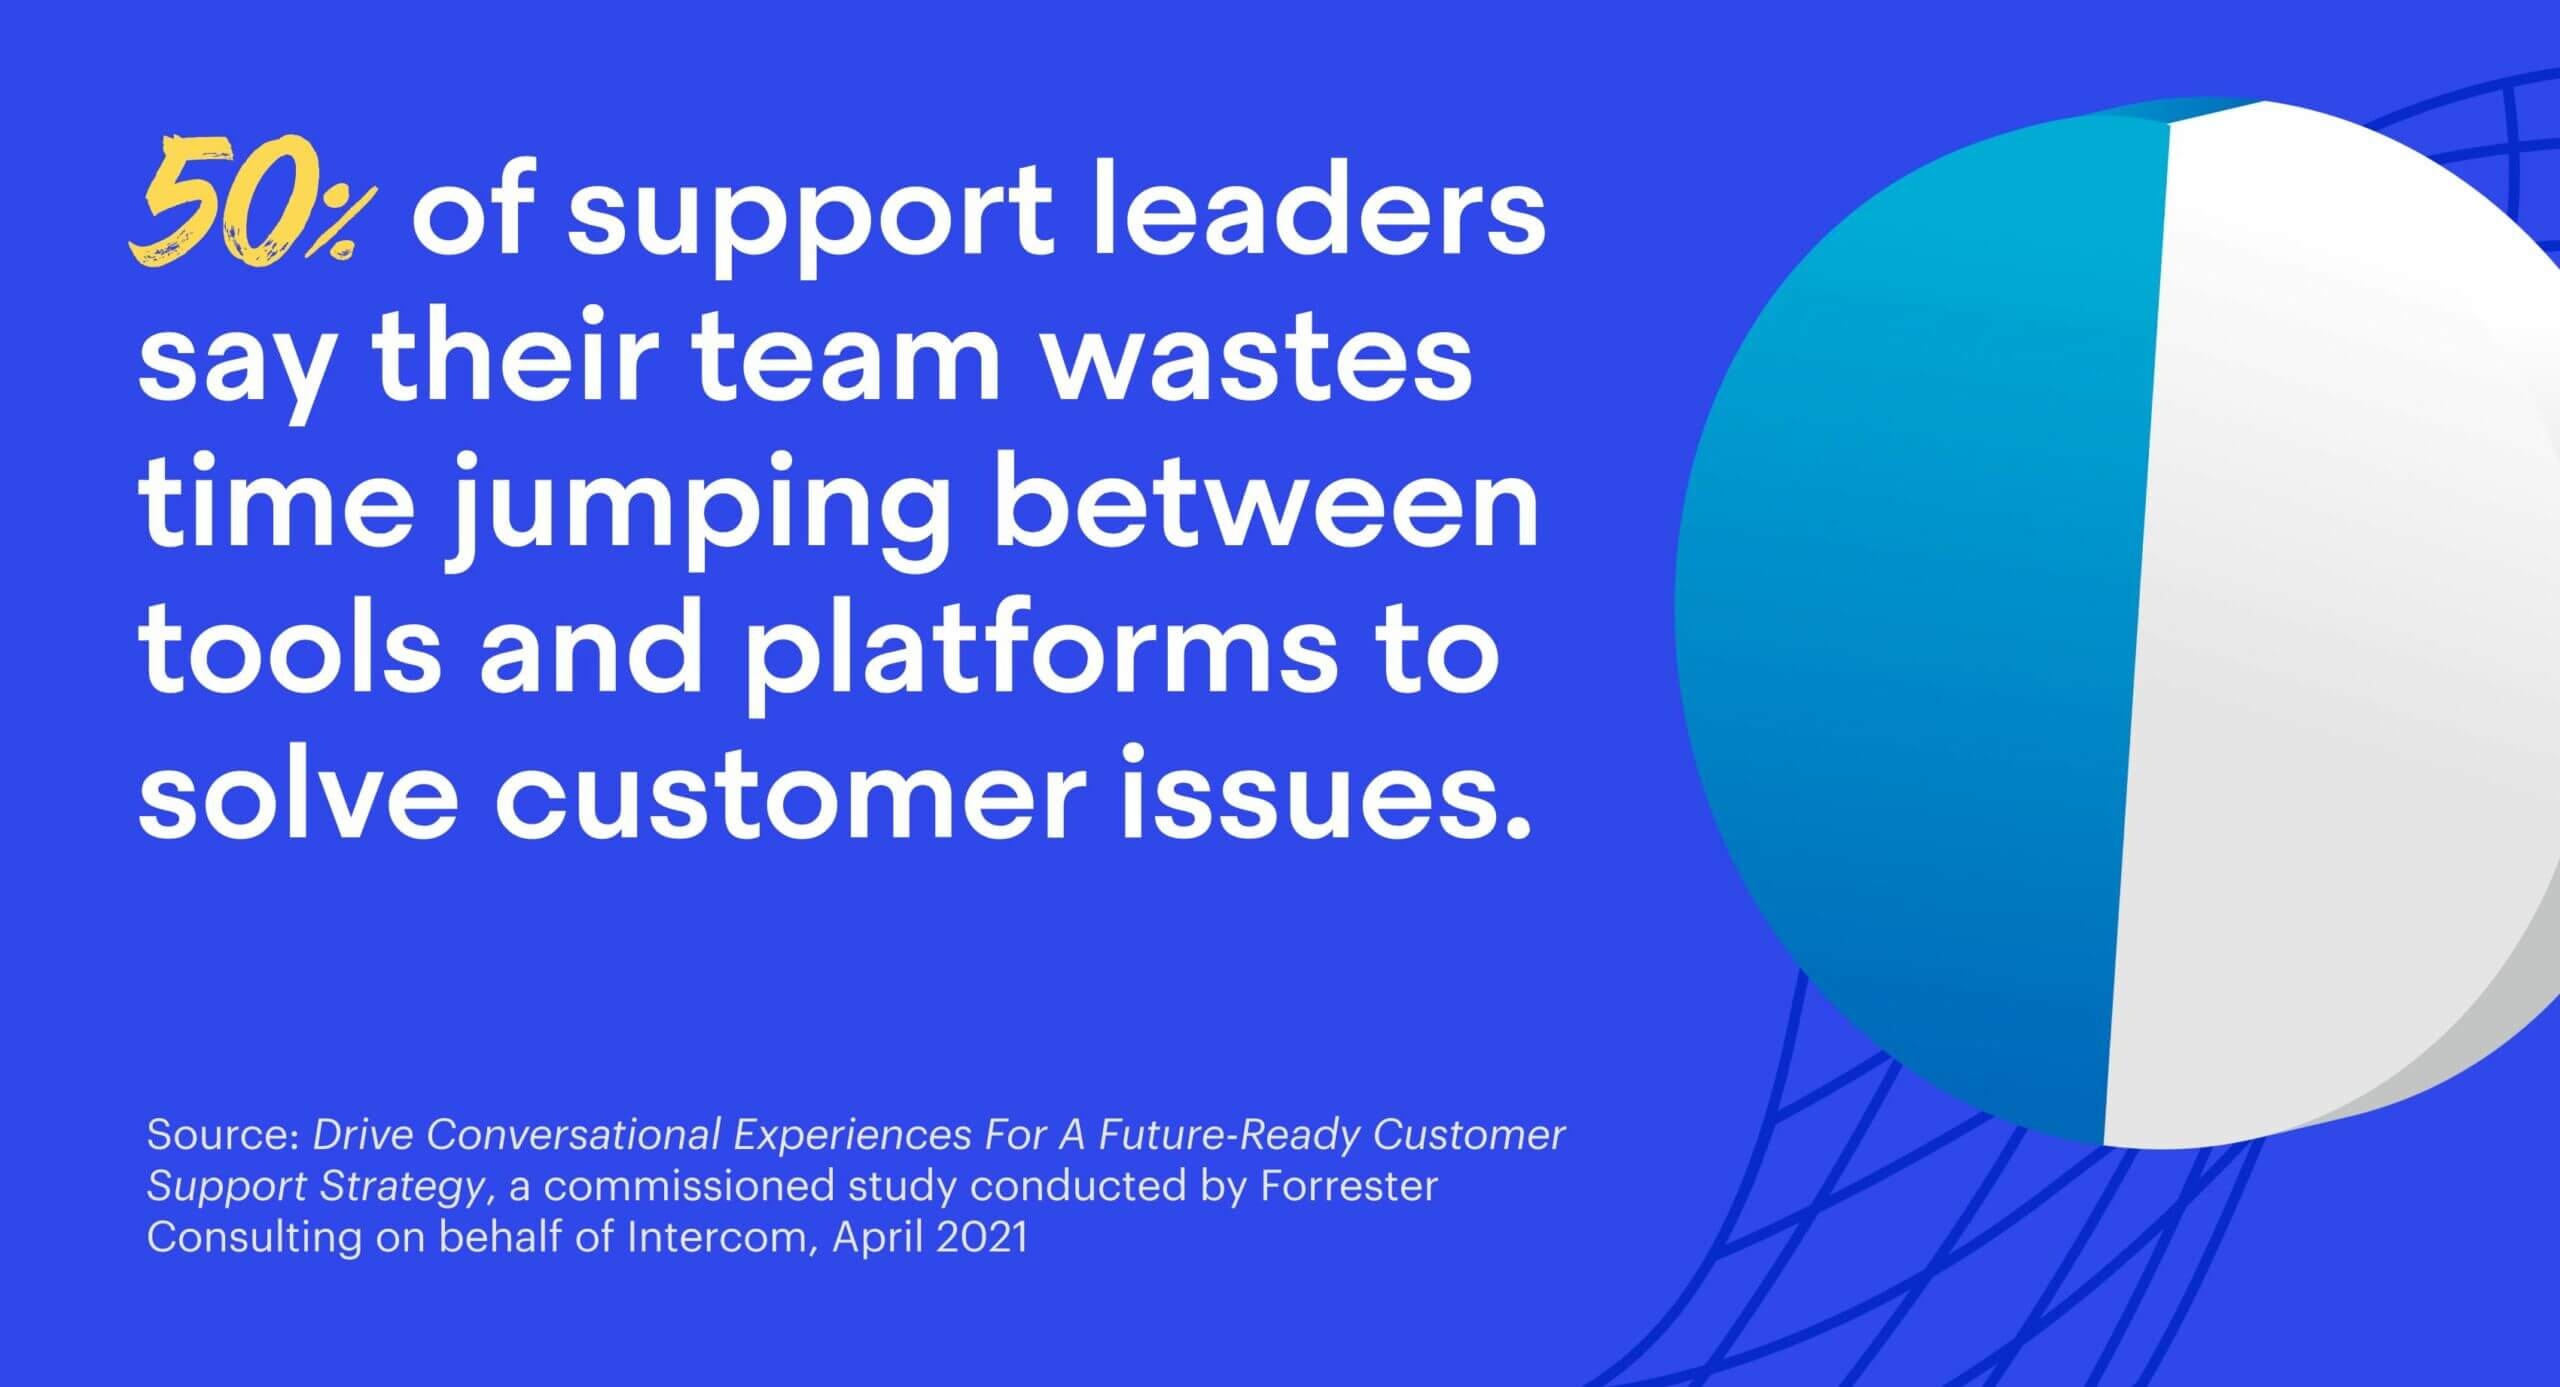 50% of support leaders say their team wastes time jumping between tools and platforms to solve customer issues.